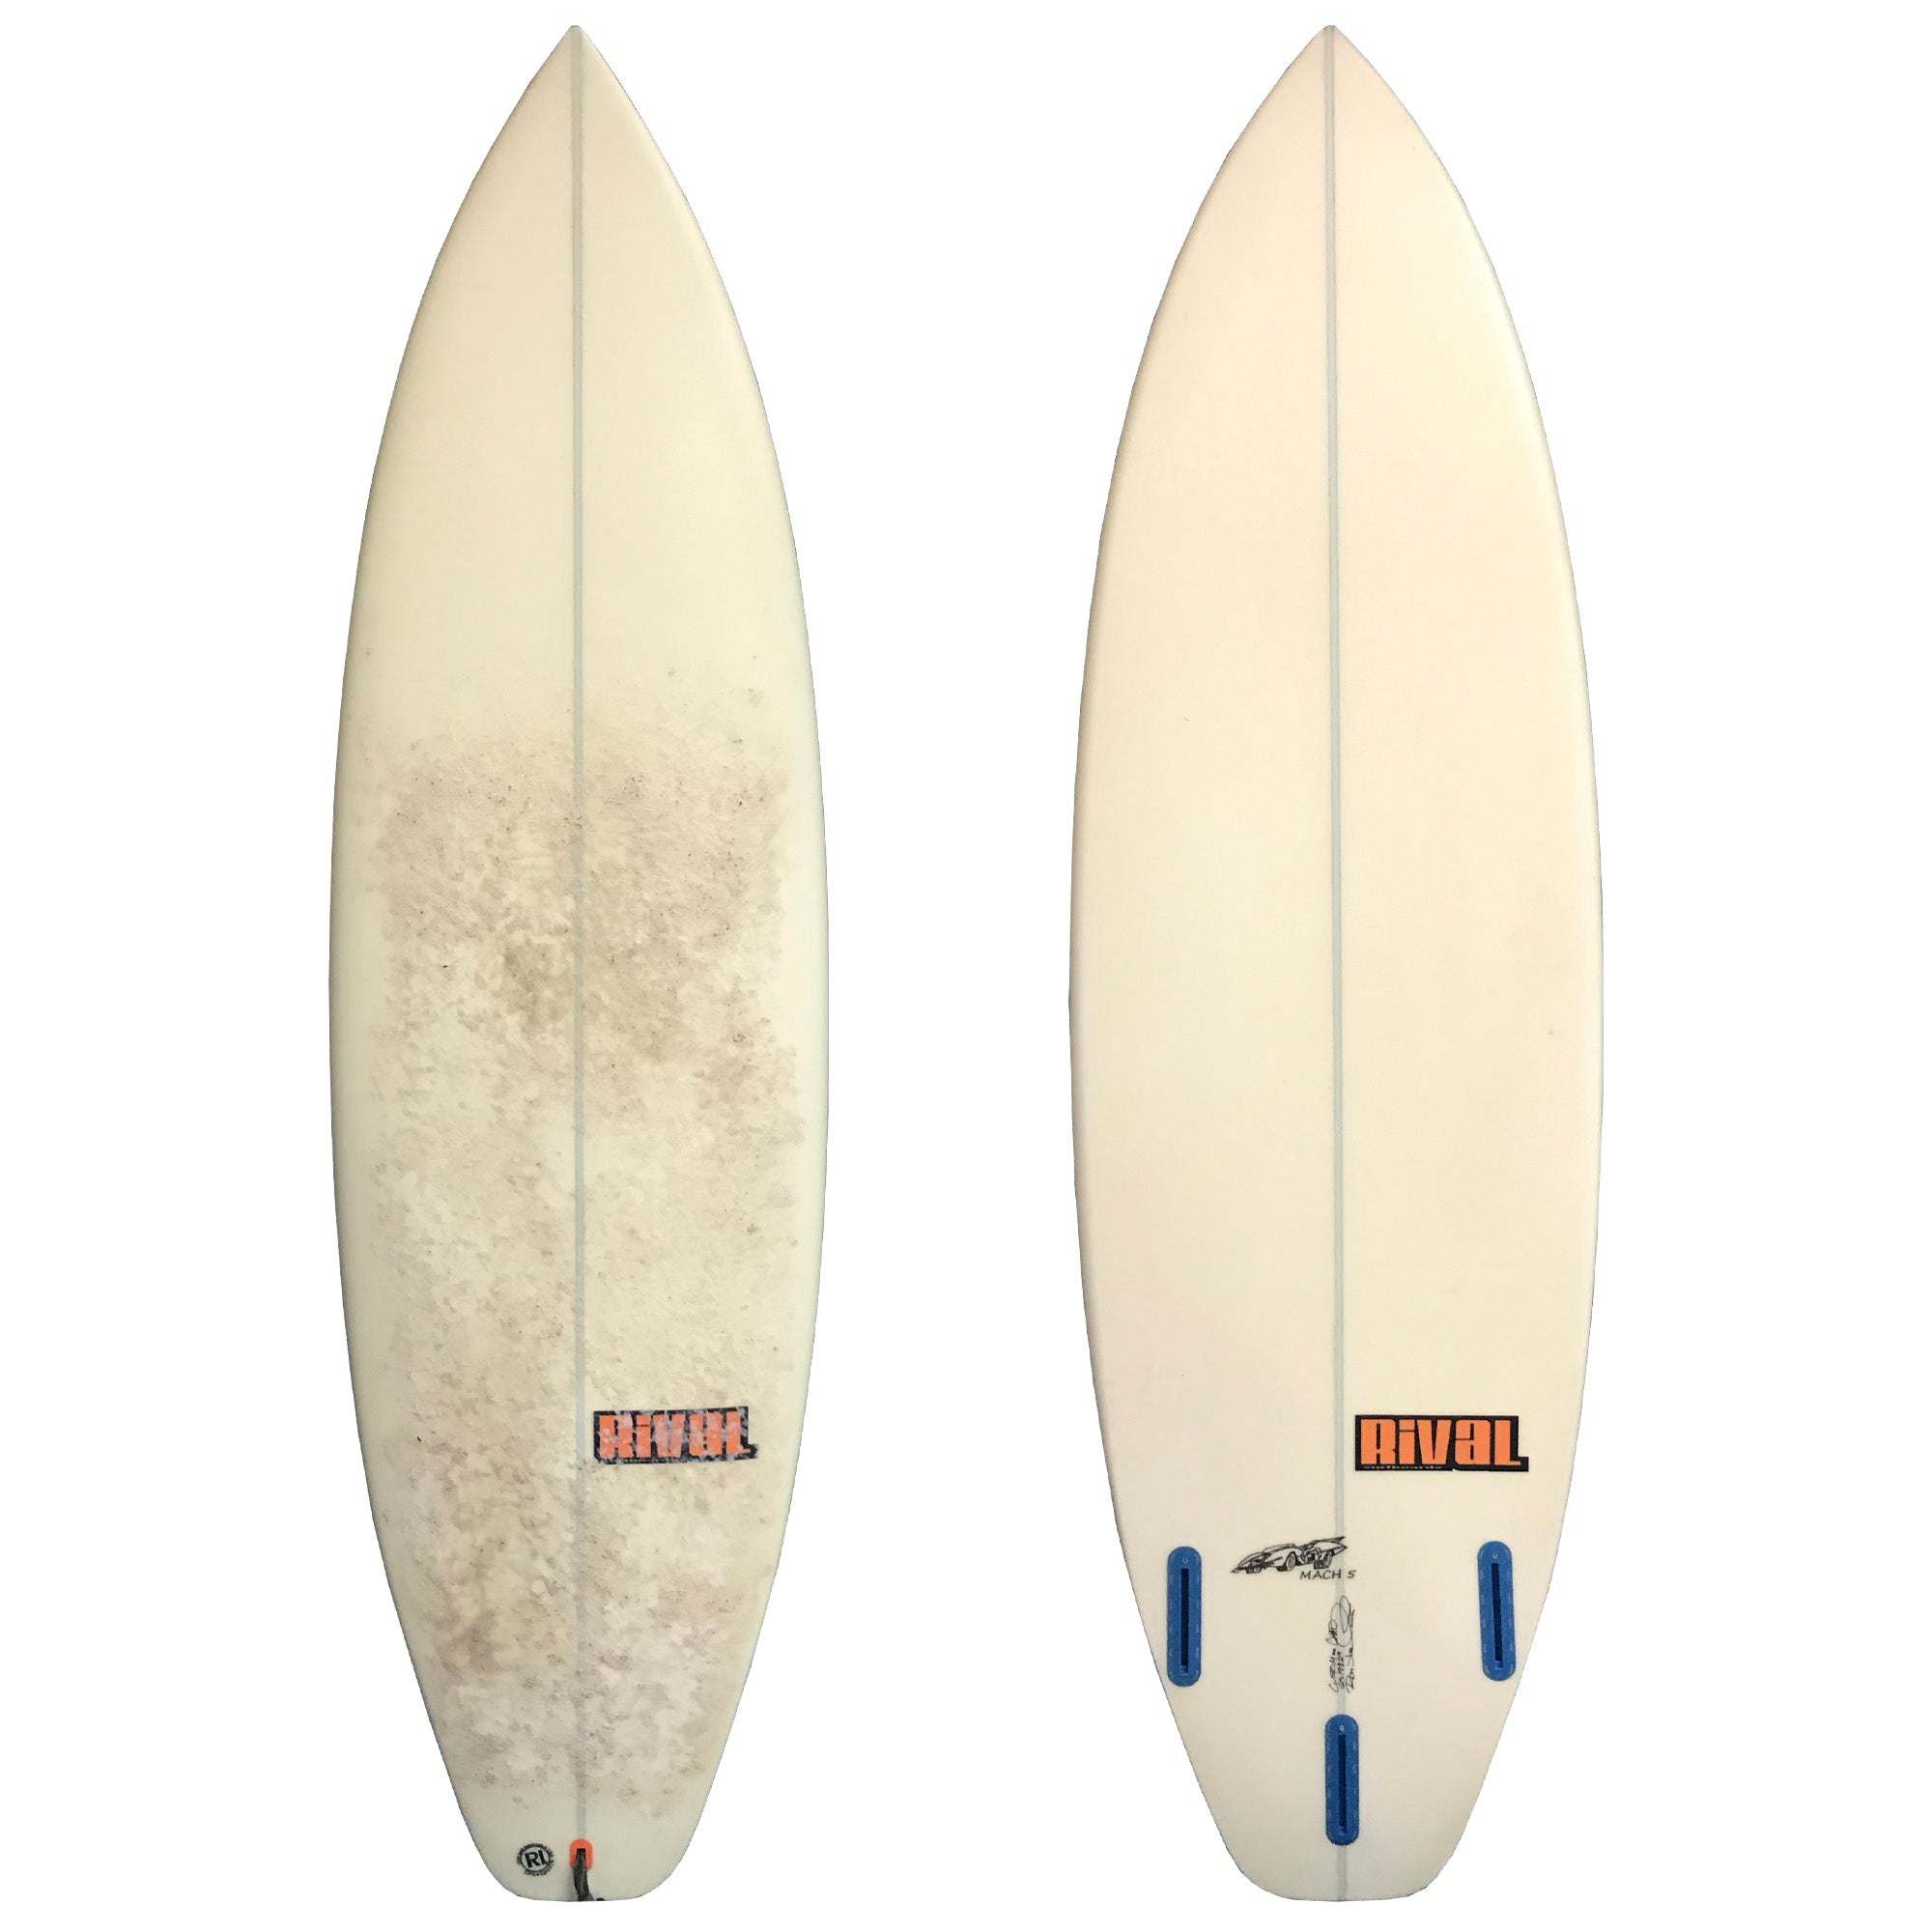 Rival Surfboards Mach 5 6' Used Surfboard